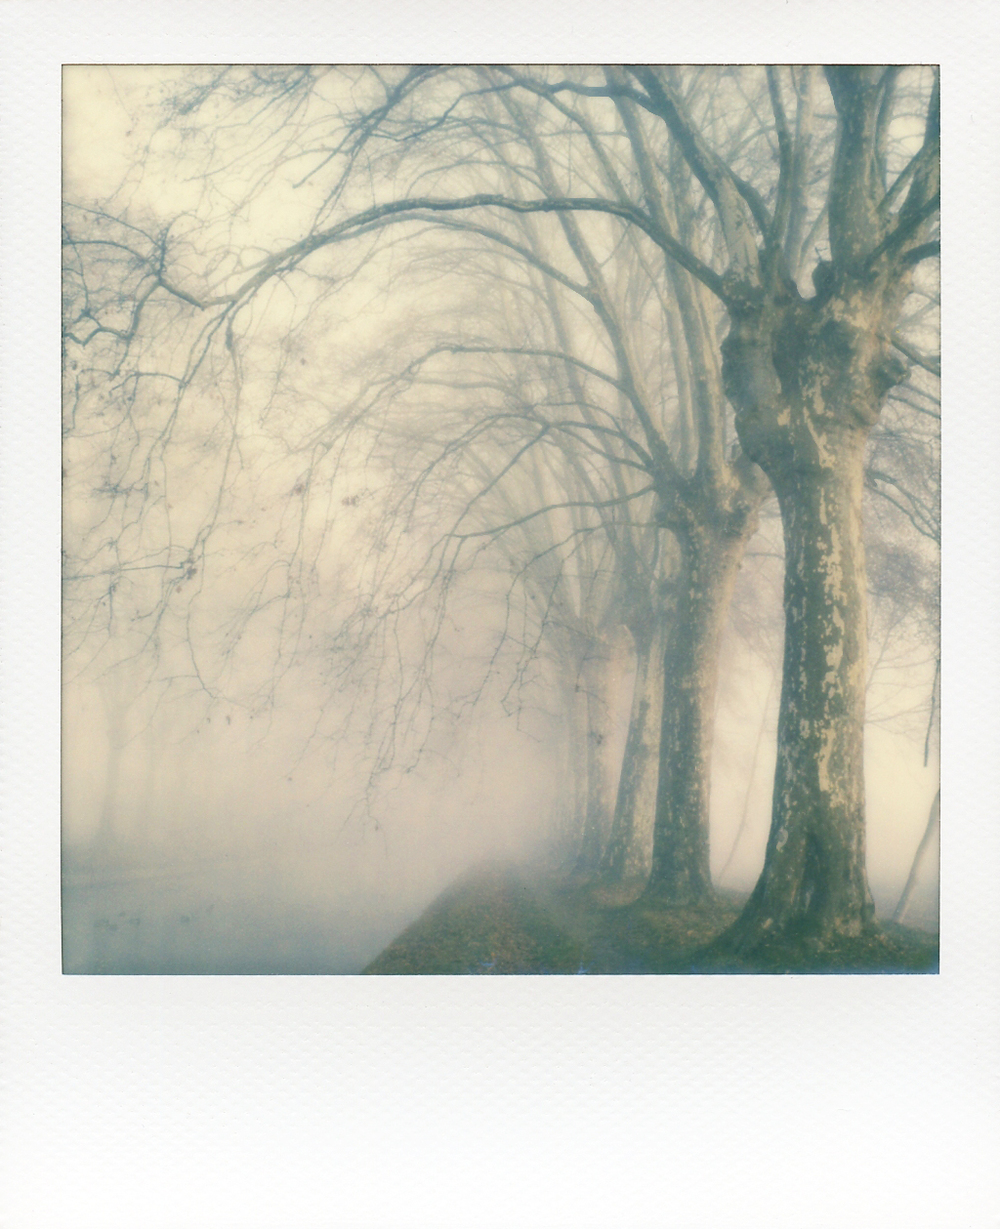 Le Canel | SX70 | Impossible Project 600 Speed Film | Vincent Gabriel